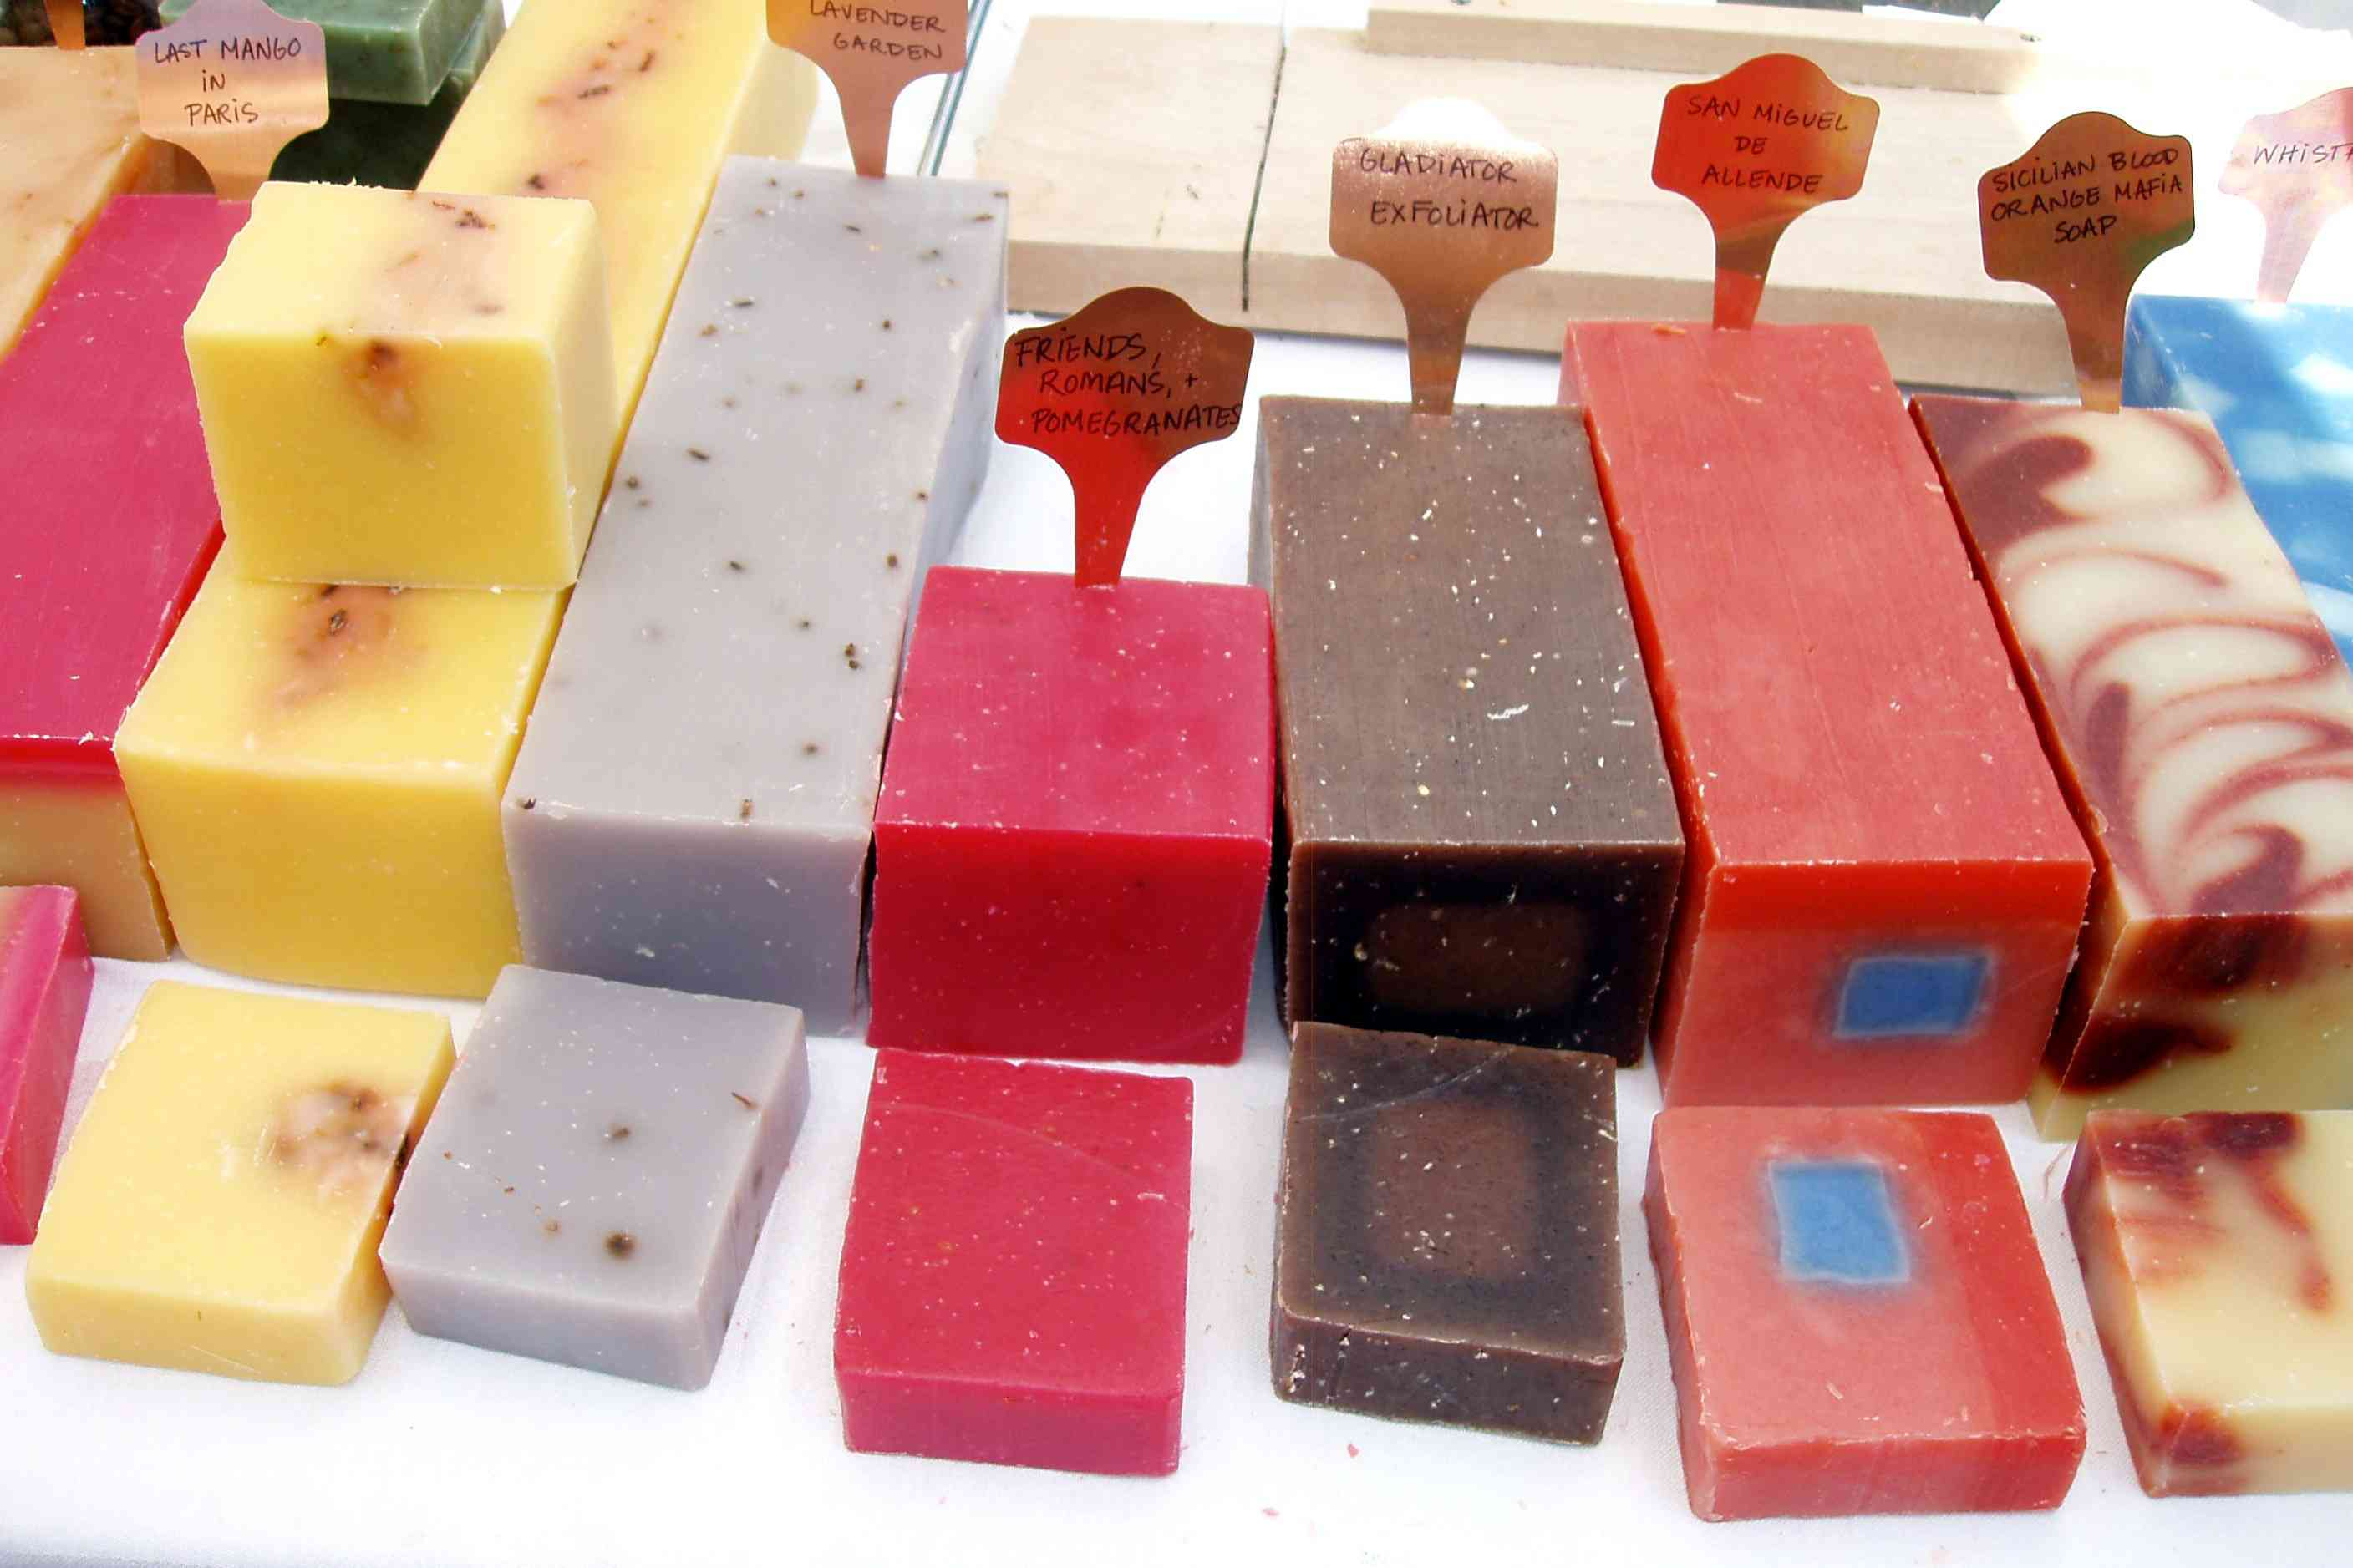 Artisanal, flavory soaps are descended from those invented in Asia nearly 5,000 years ago